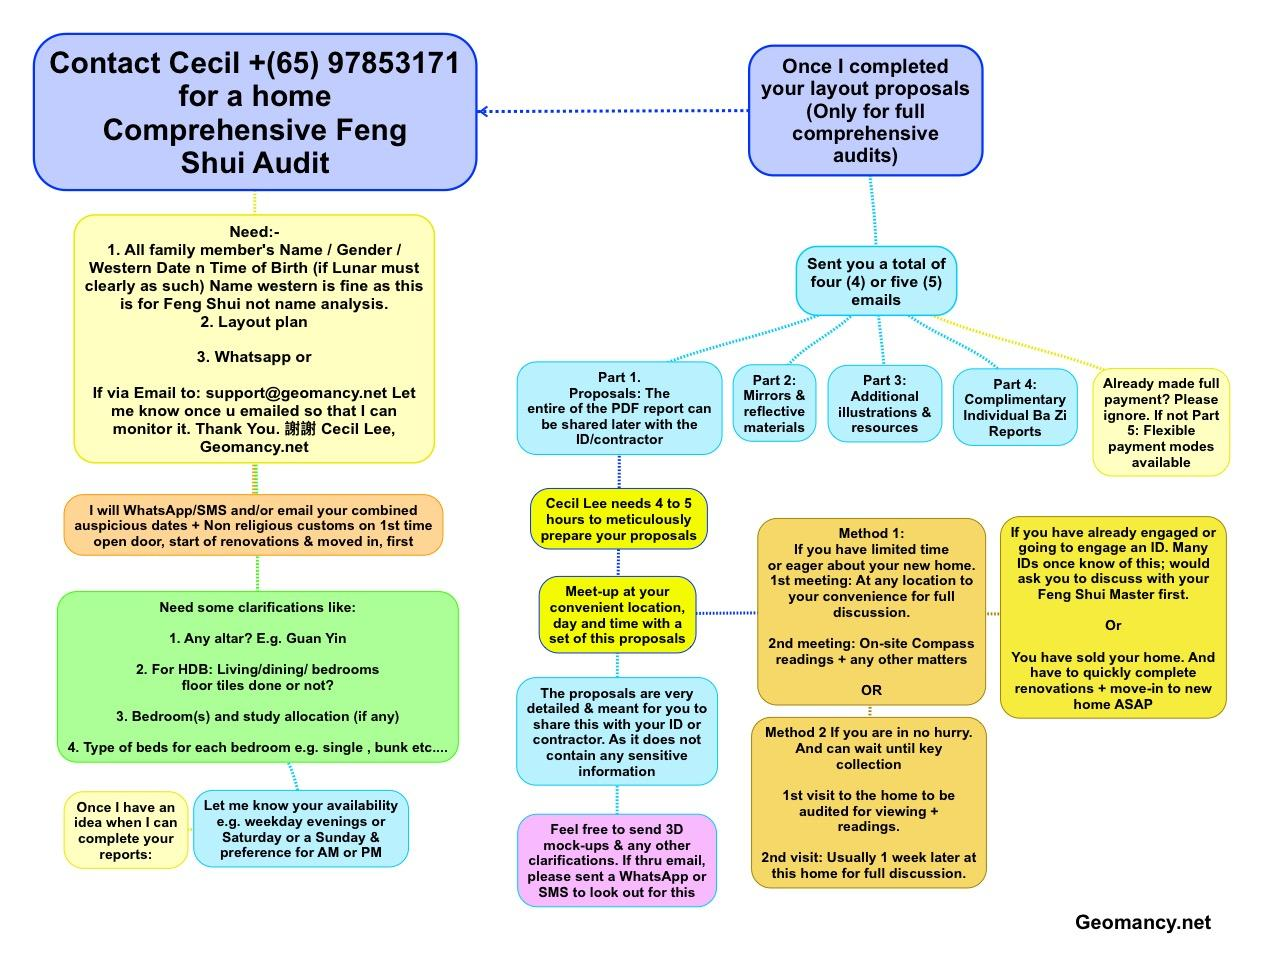 Geomancy.Net's Feng Shui Consultation Flow Chart Summary